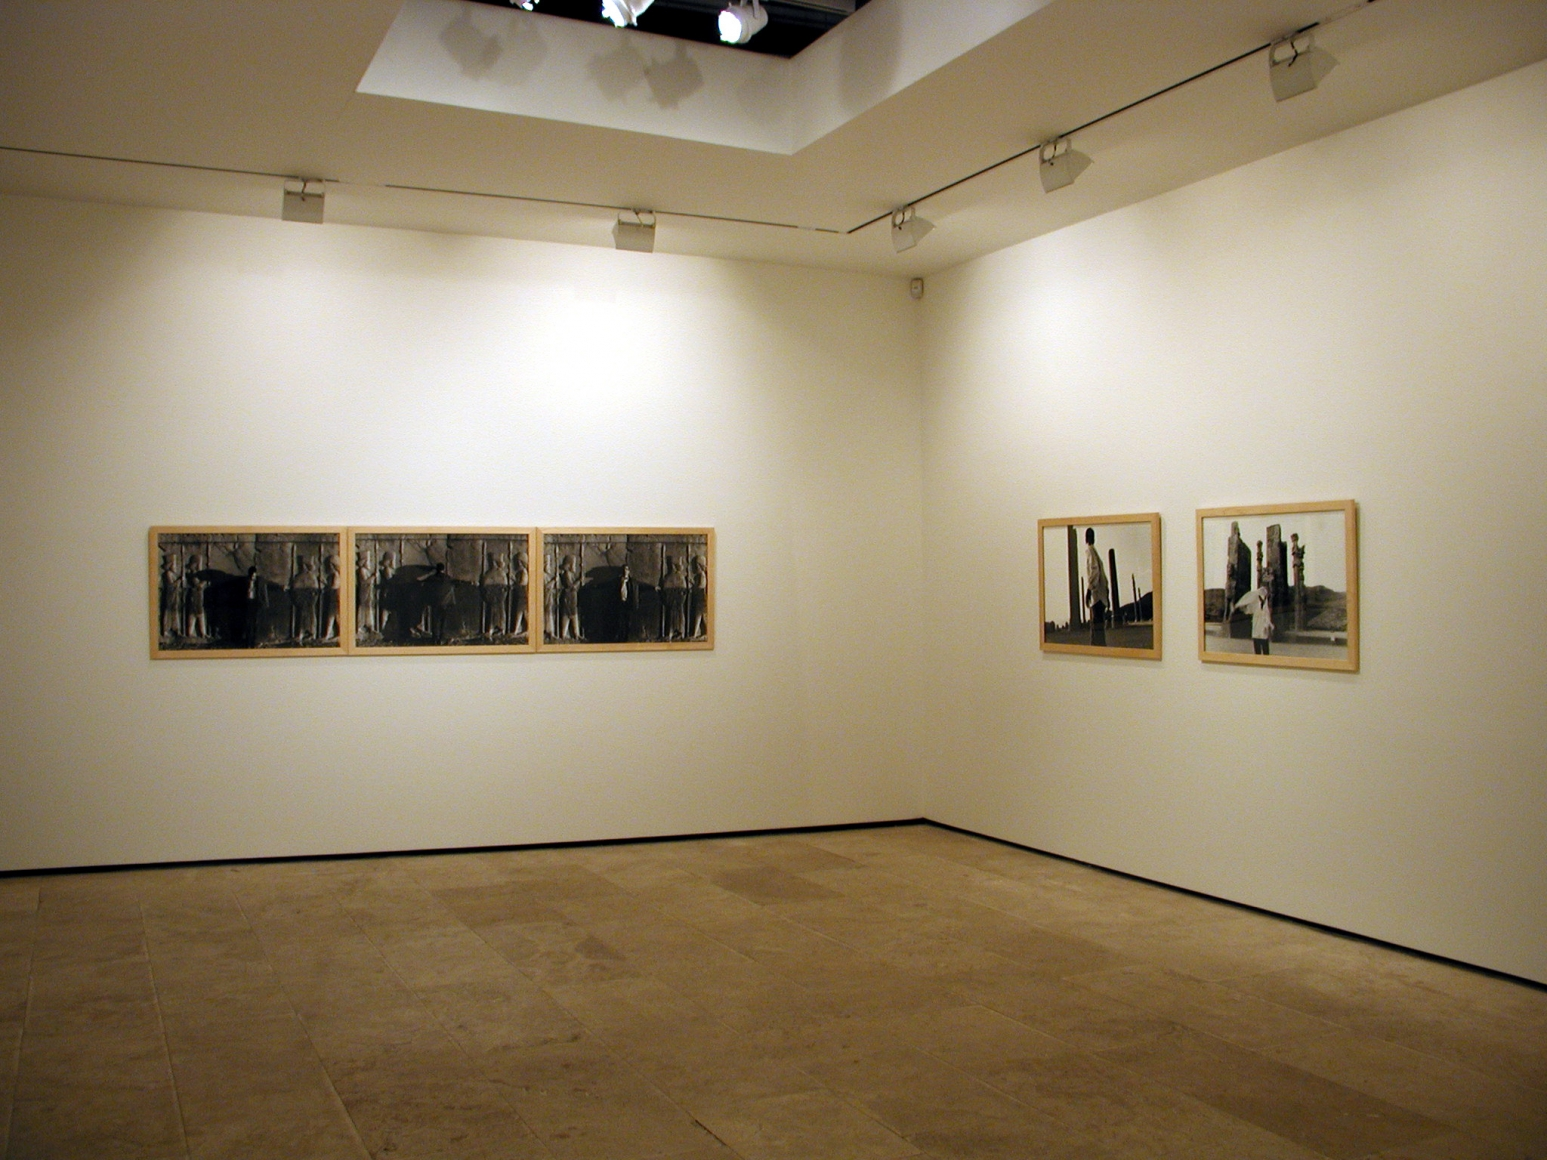 Two groupings of photographs on opposite walls in the exhibition Sadegh Tirafkan at Lehmann Maupin in New York in 2004